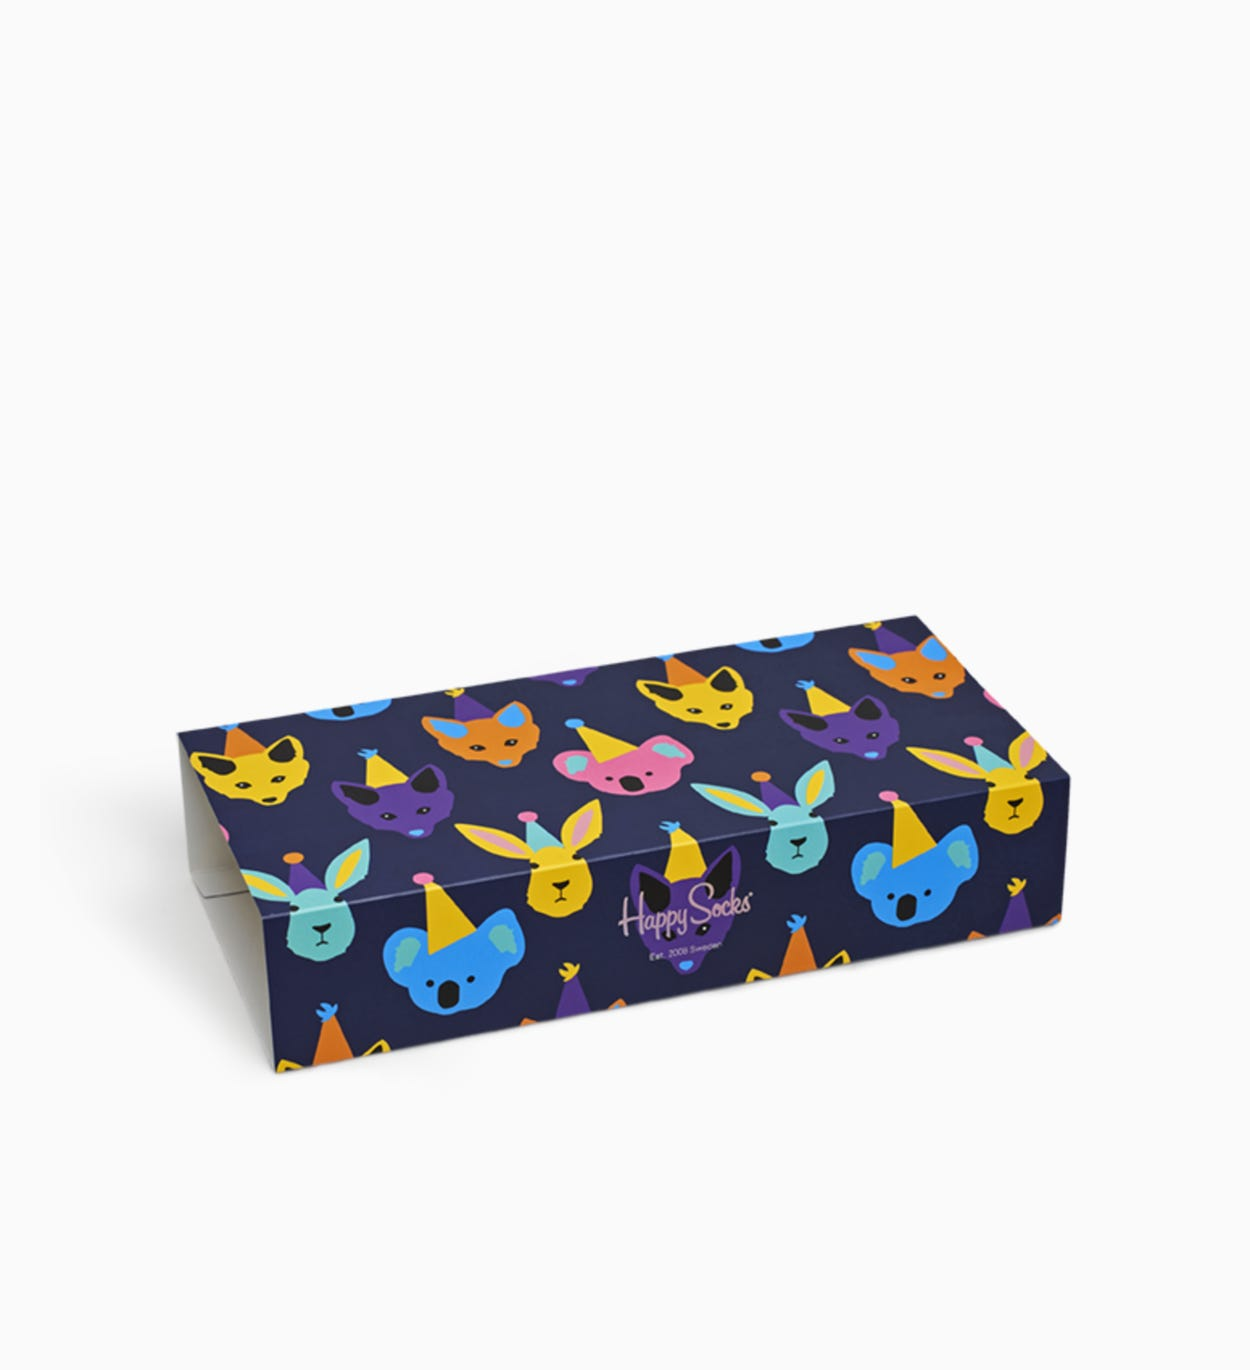 Happy B-Day Sleeve for Gift Boxes